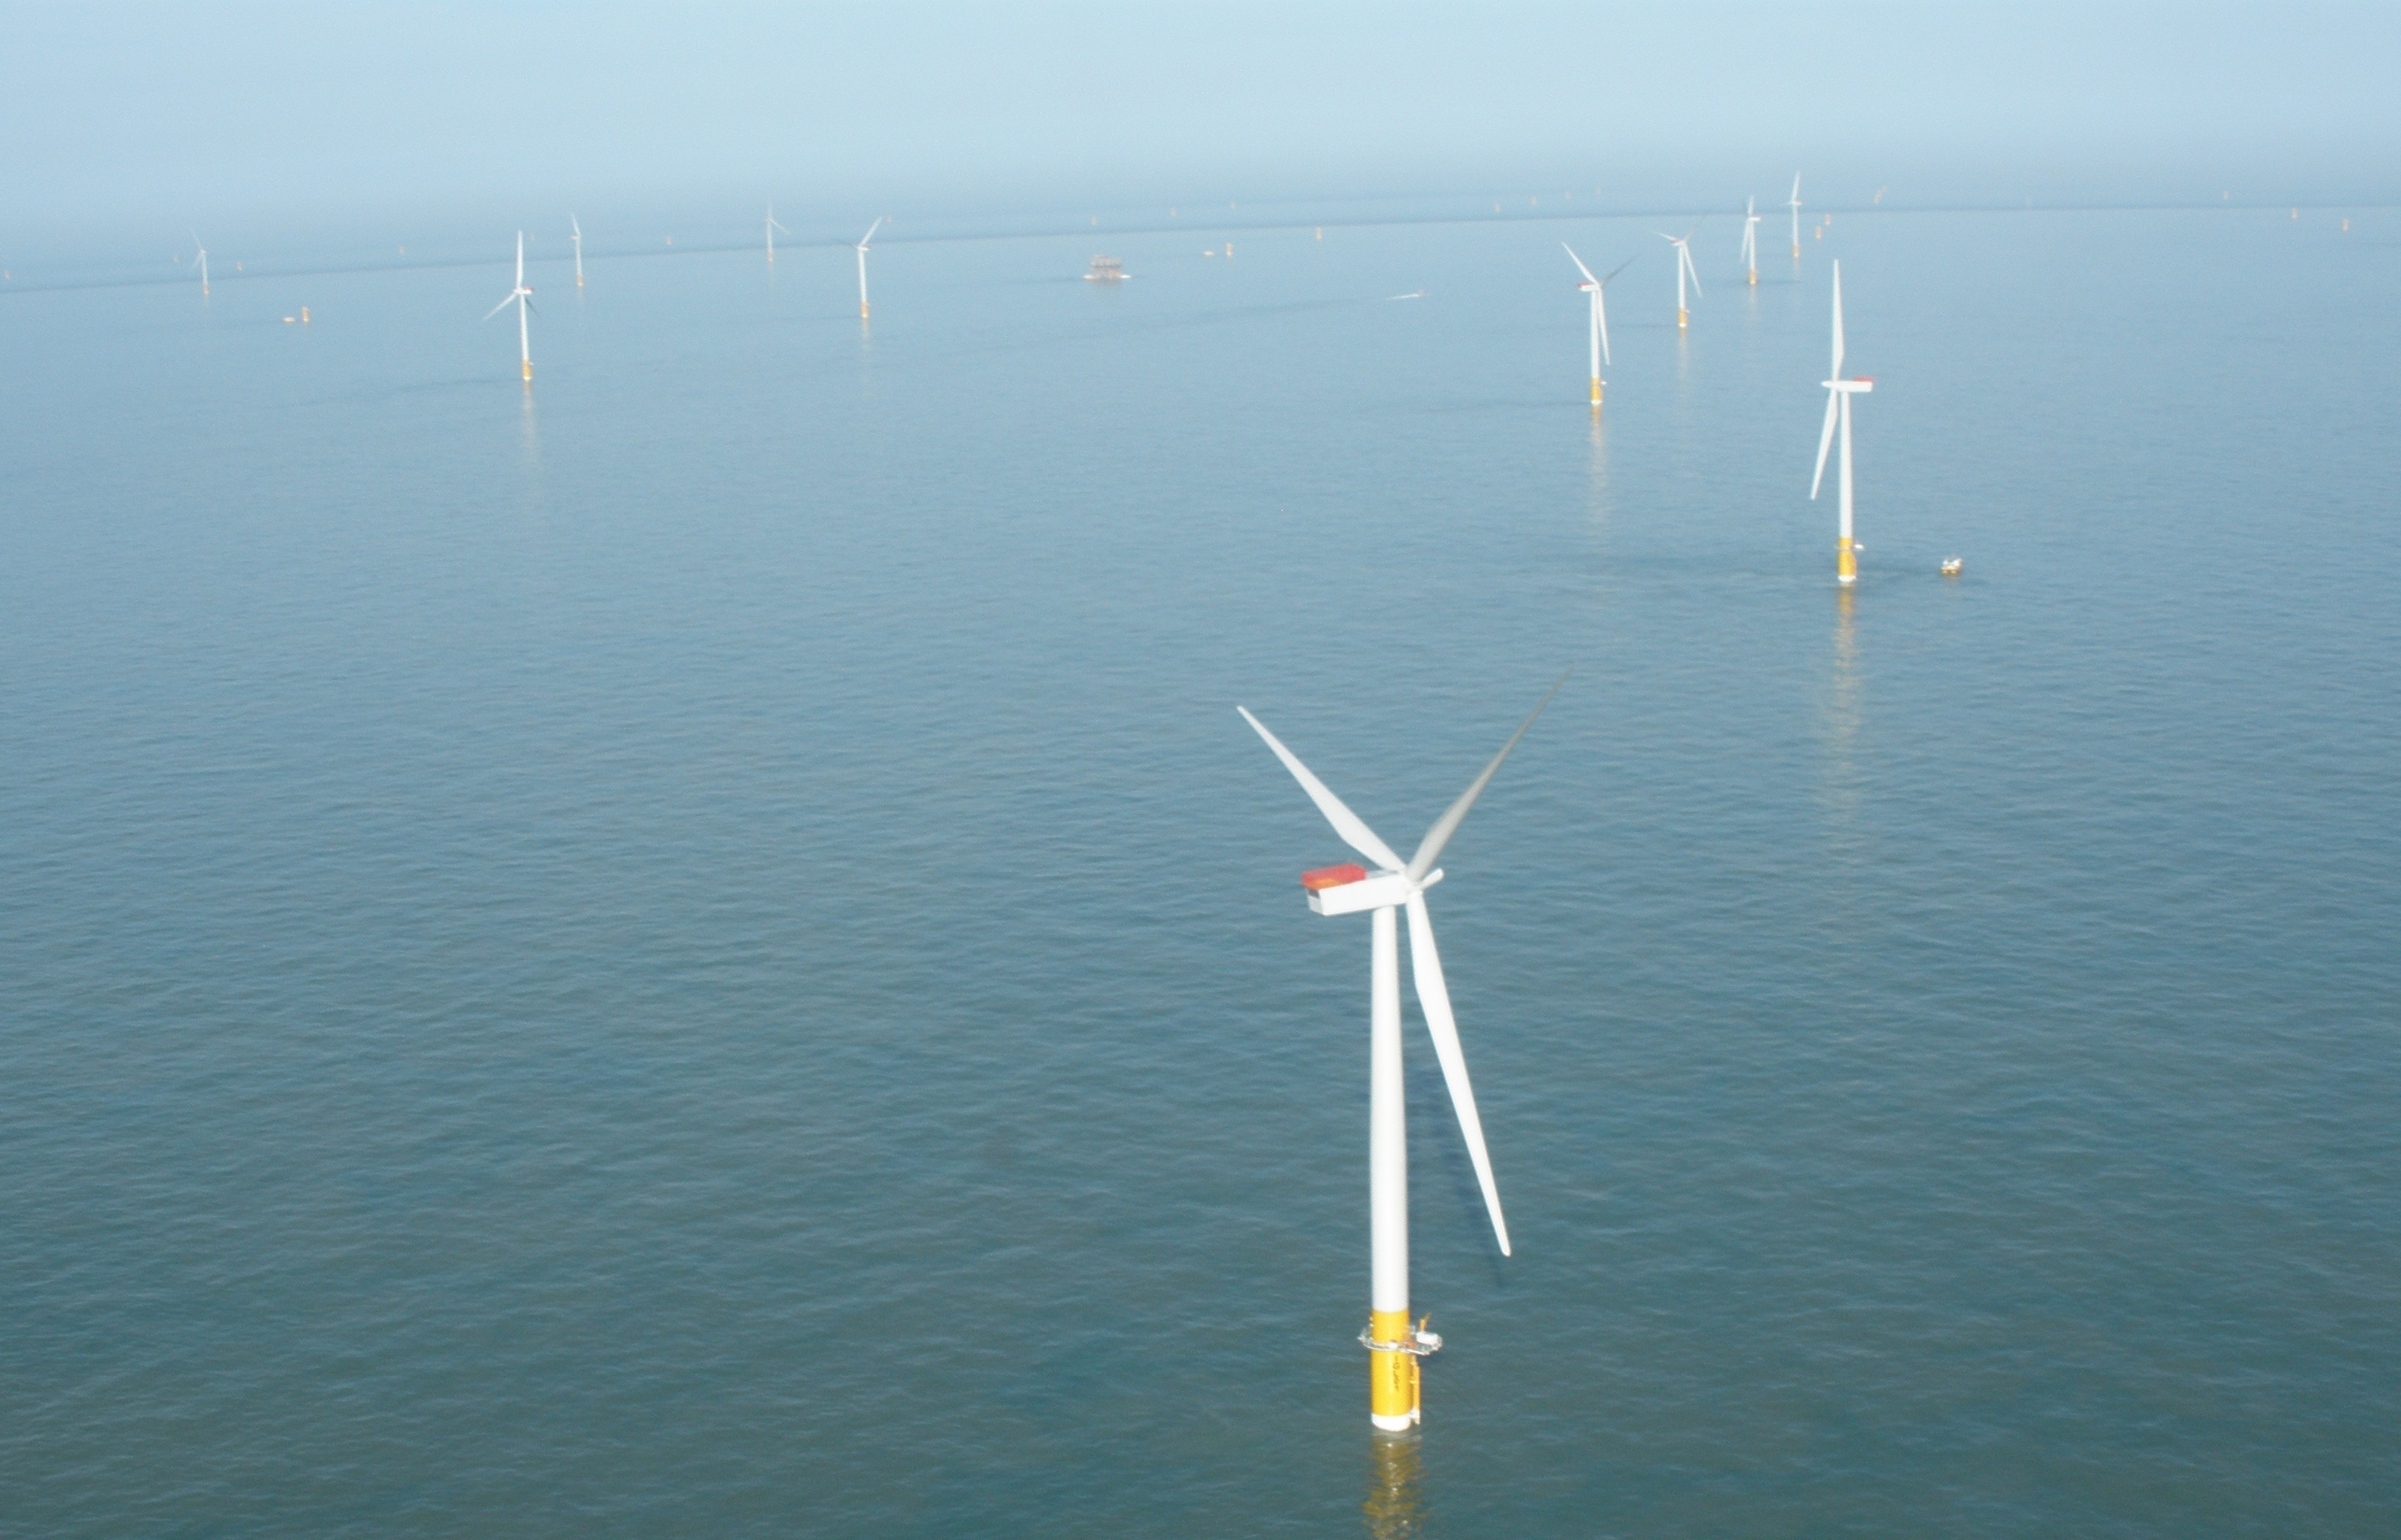 Seagreen will be Scotland's largest wind farm once complete and generate enough electricity to power 1 million homes